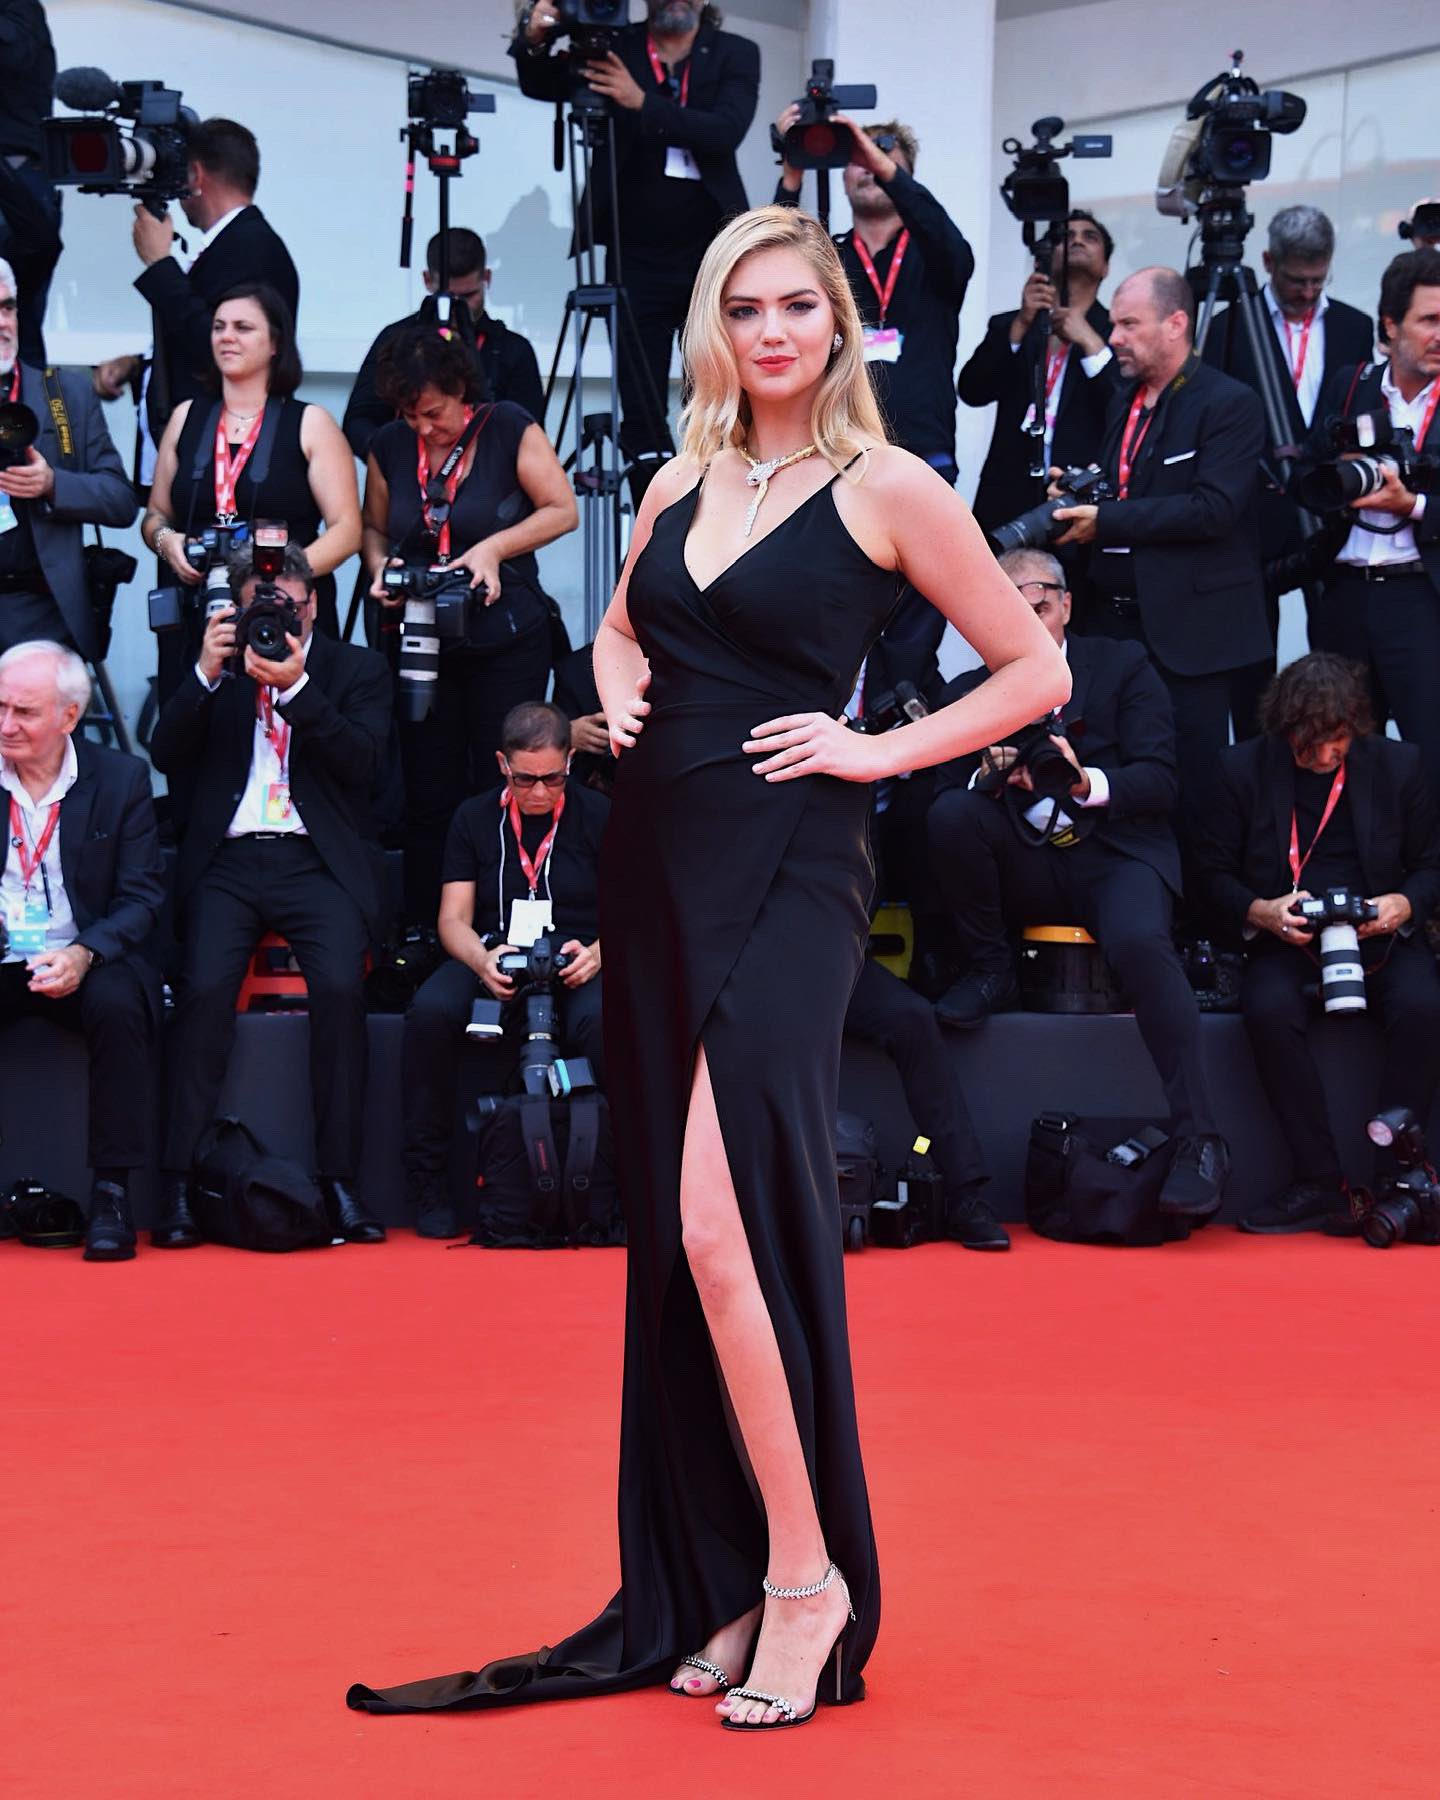 Venezia 2019 - Kate Upton - Hair by Massimo Serini